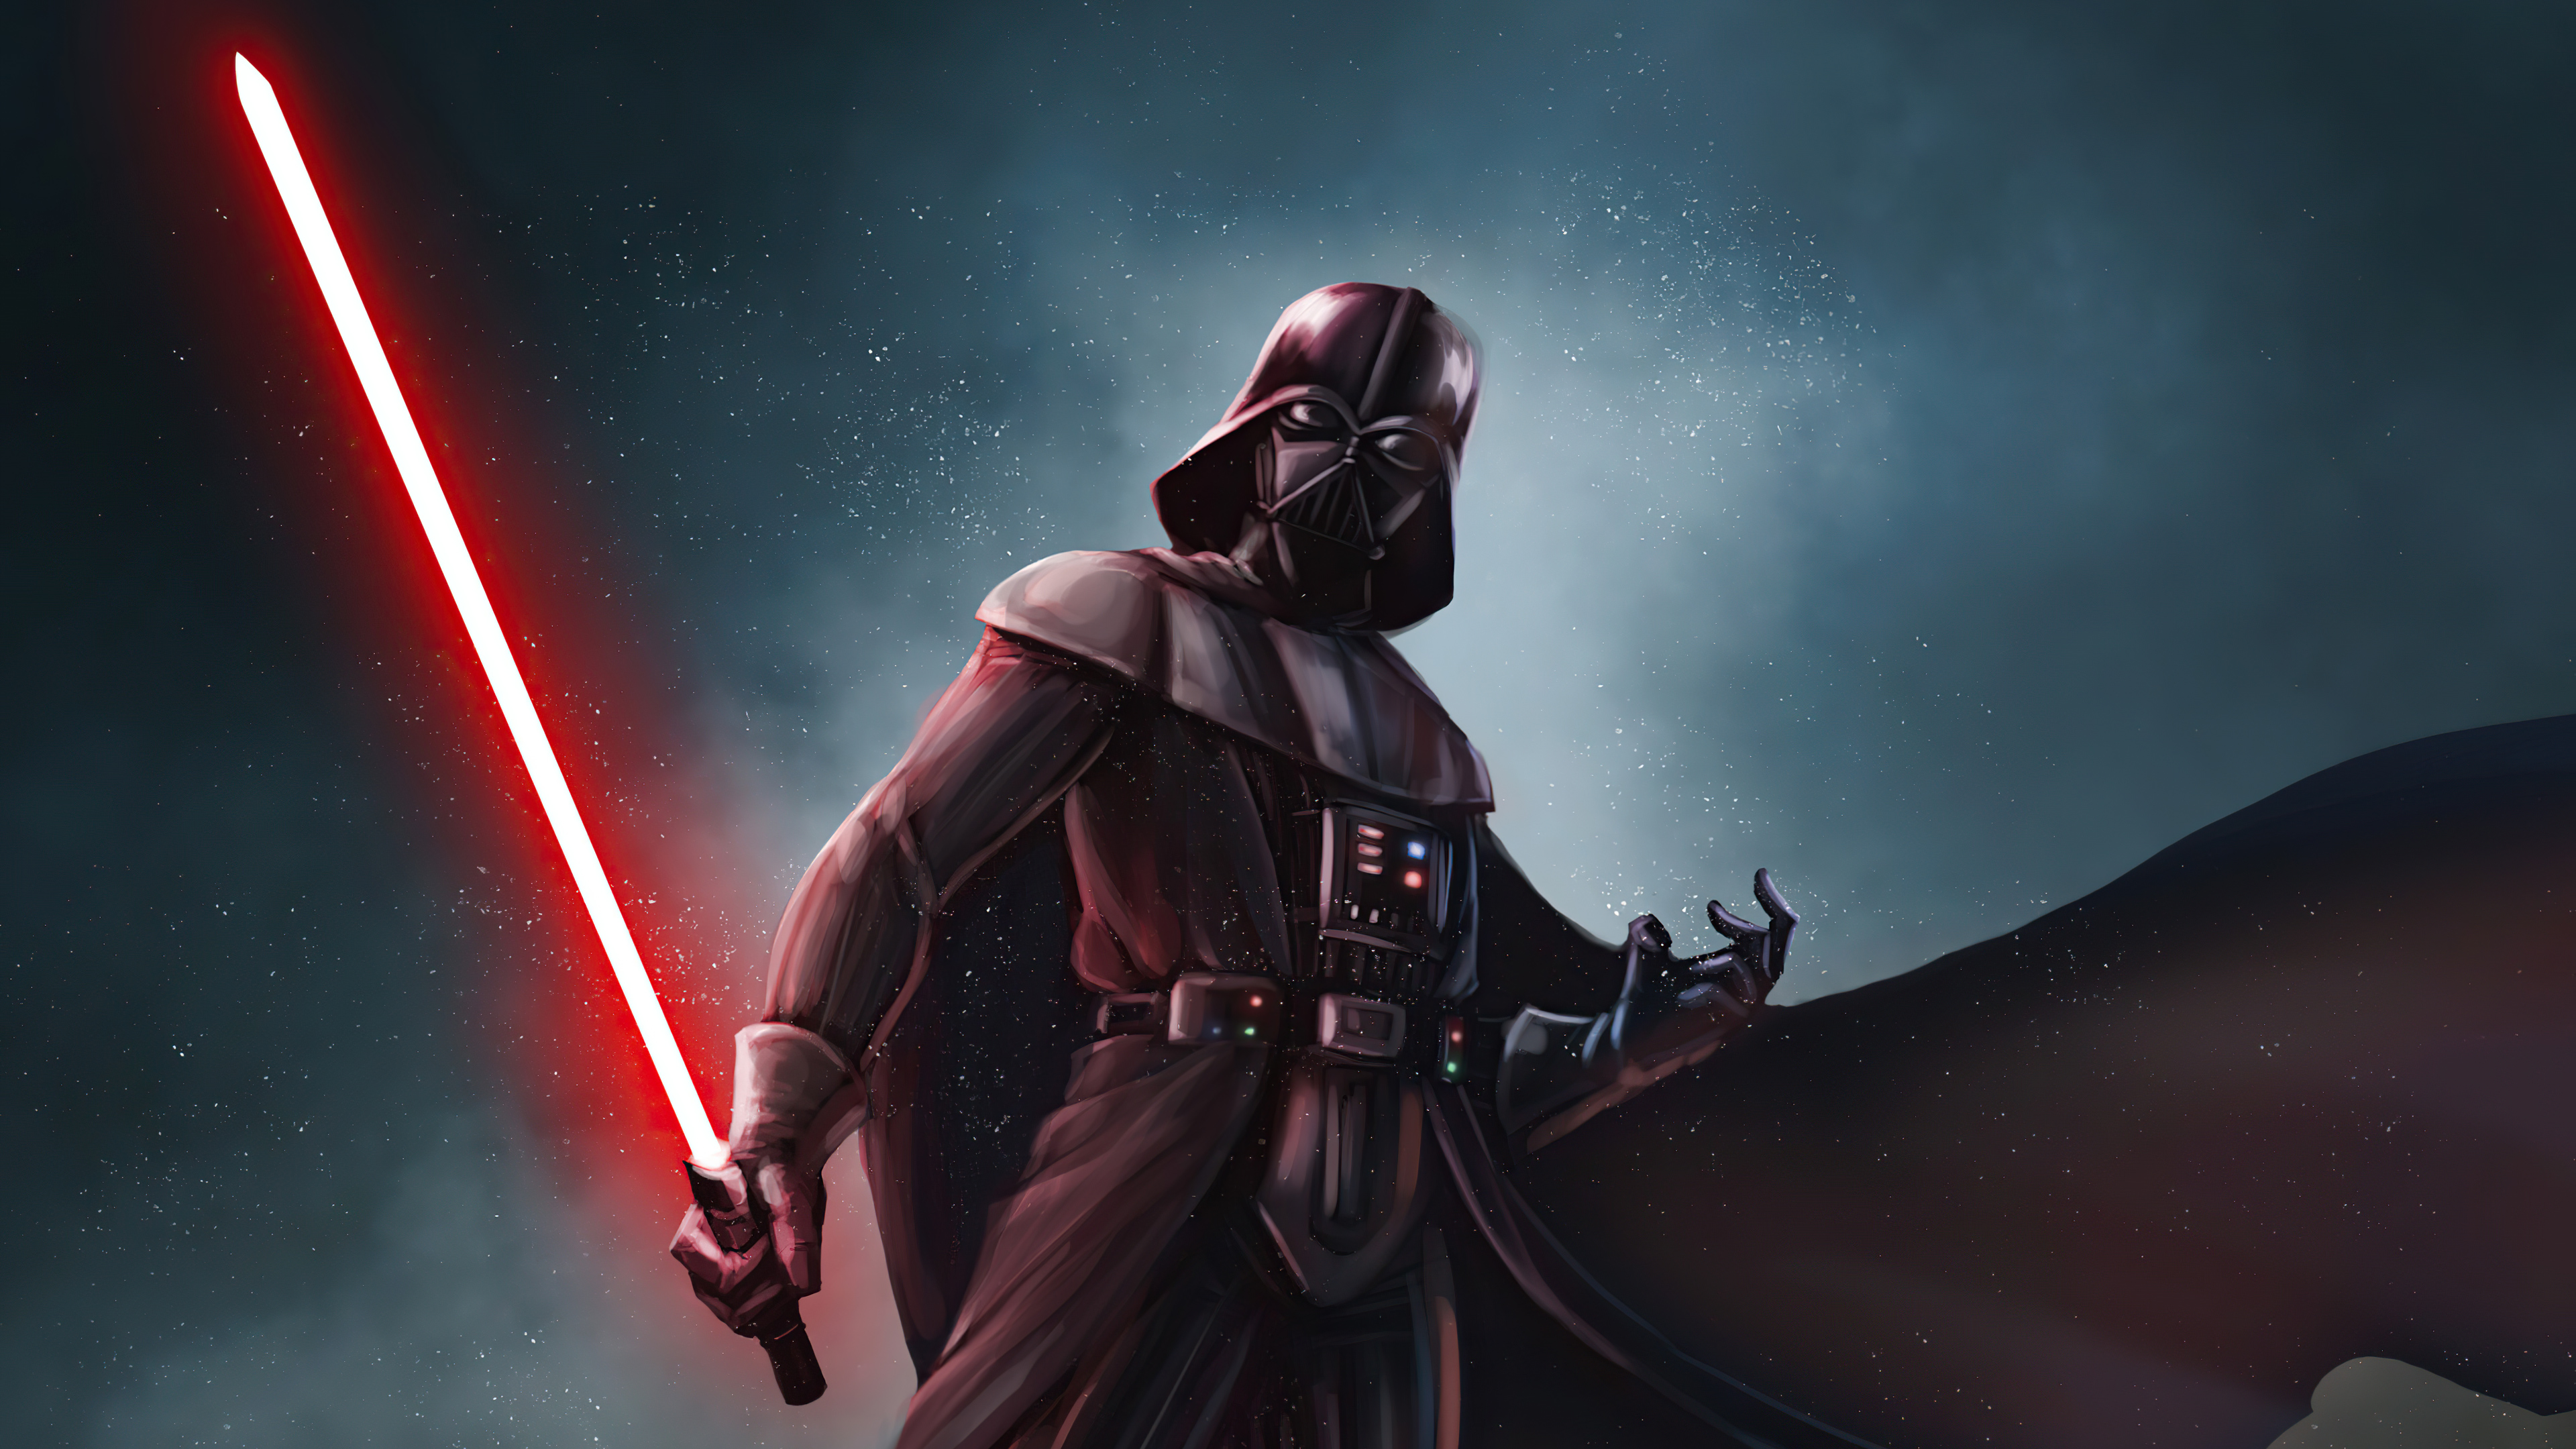 4k Darth Vader 2020 Hd Movies 4k Wallpapers Images Backgrounds Photos And Pictures